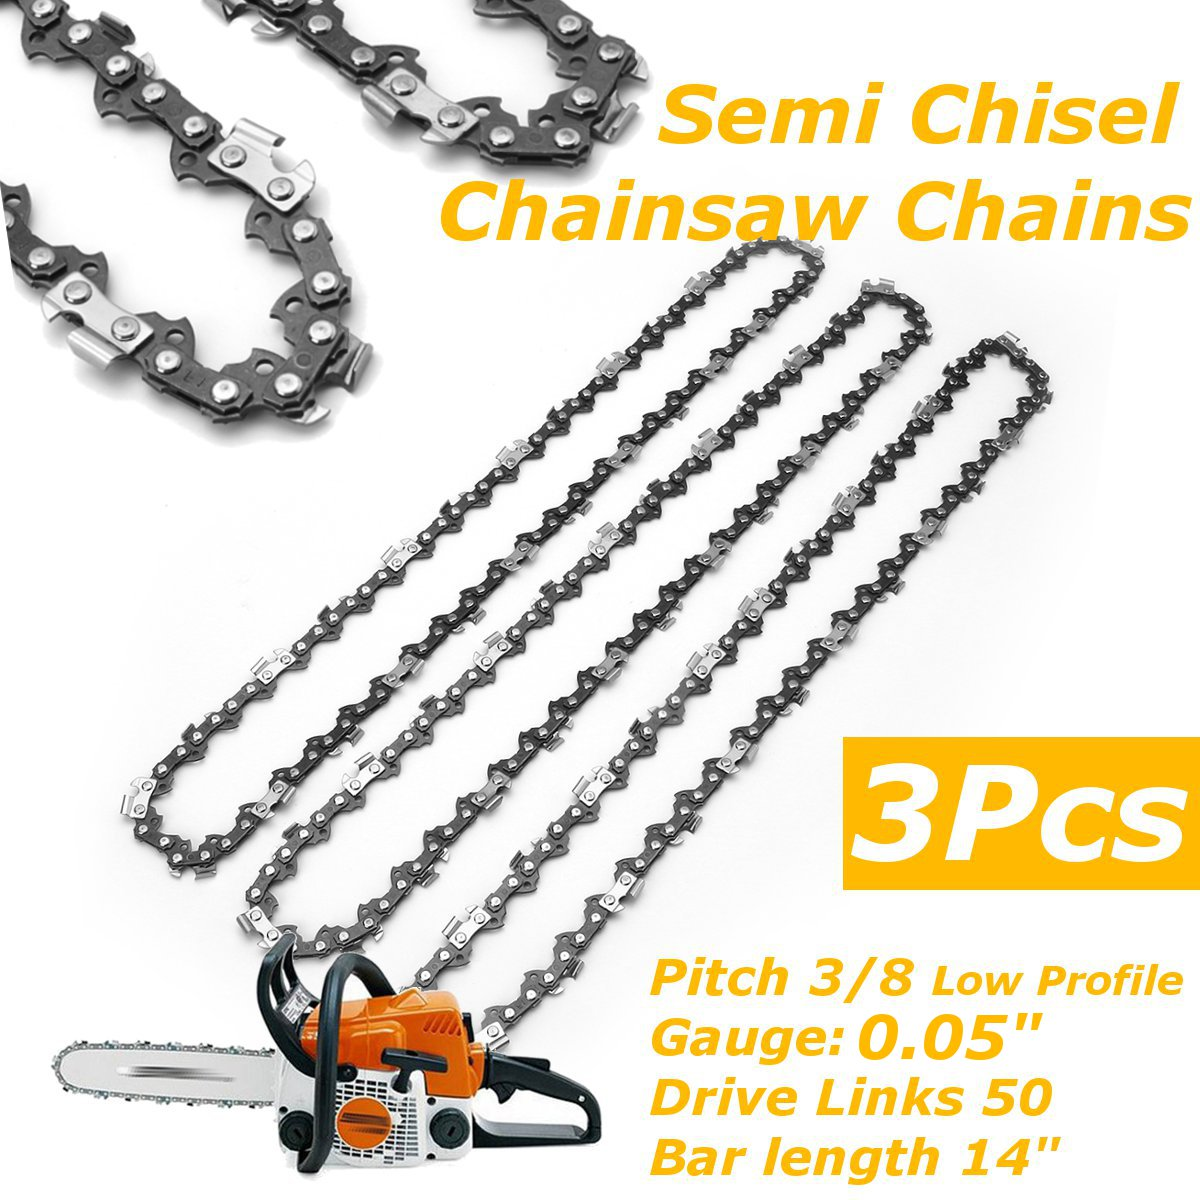 3Pcs Chainsaw Semi Chisel Chains 3/8LP 0.05 For Stihl MS170 MS171 MS180 MS181 Electric Saw